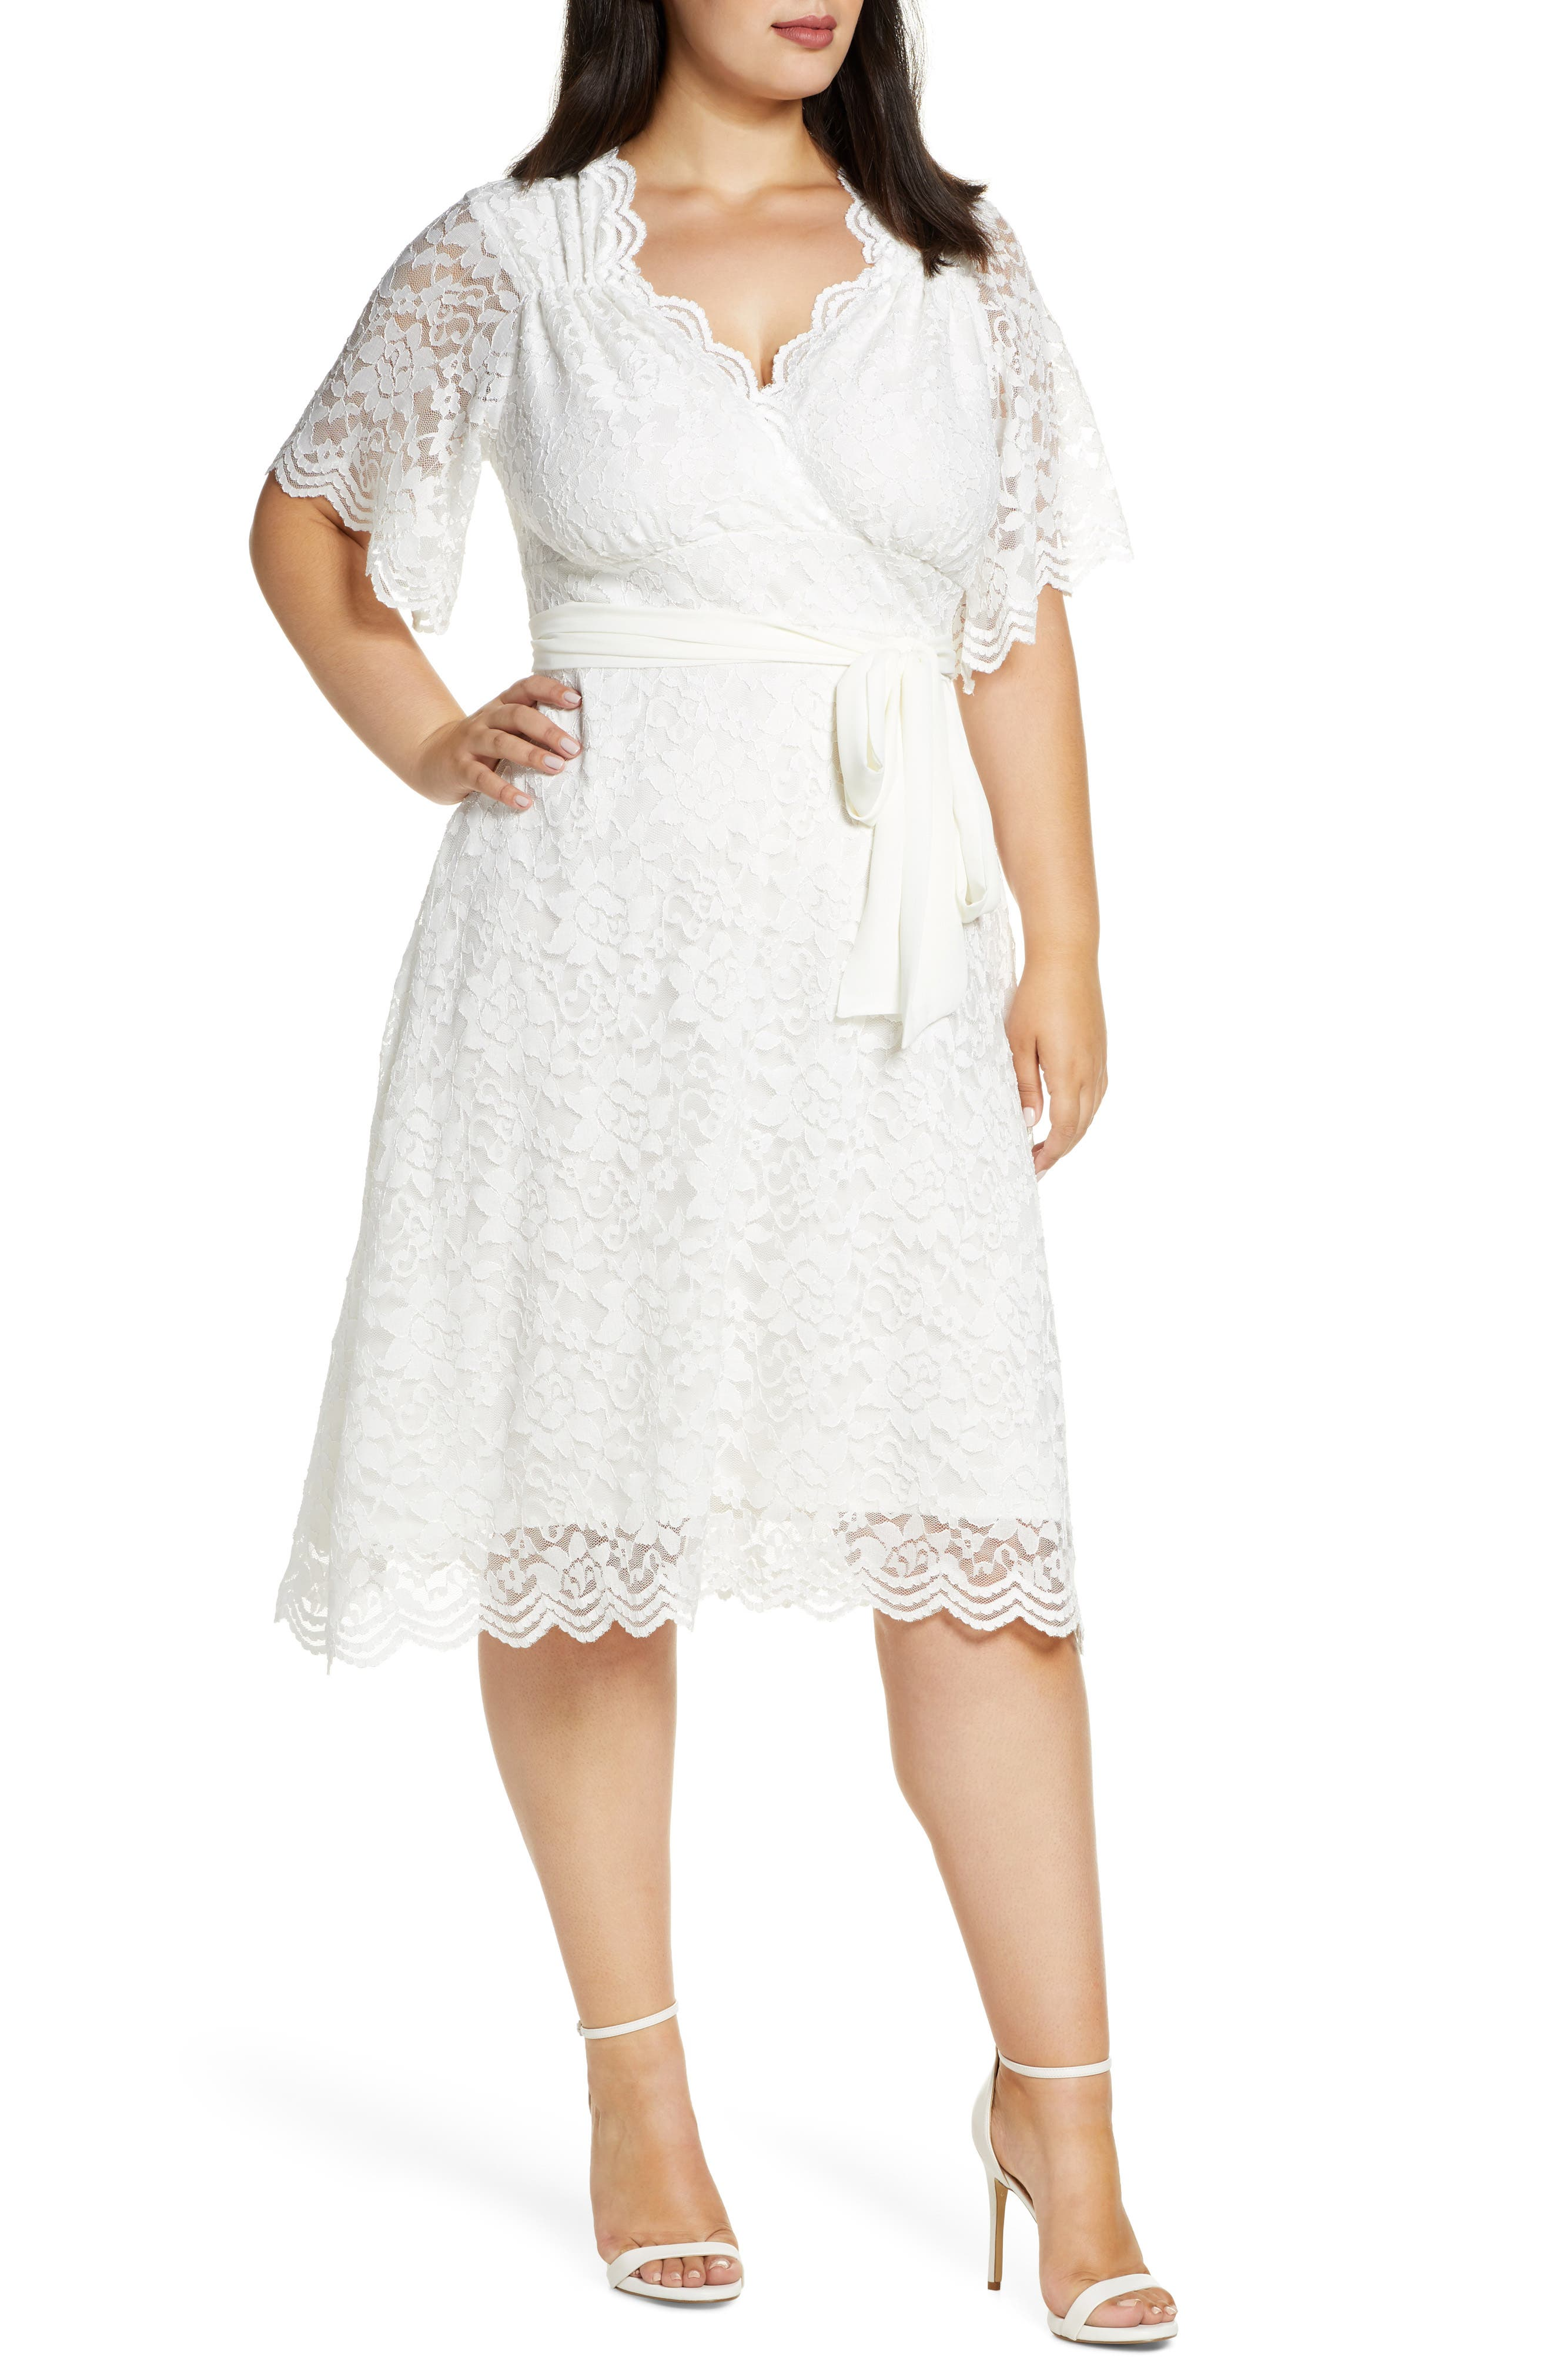 50s Wedding Dress, 1950s Style Wedding Dresses, Rockabilly Weddings Plus Size Womens Kiyonna Graced With Love Faux Wrap Dress $212.00 AT vintagedancer.com